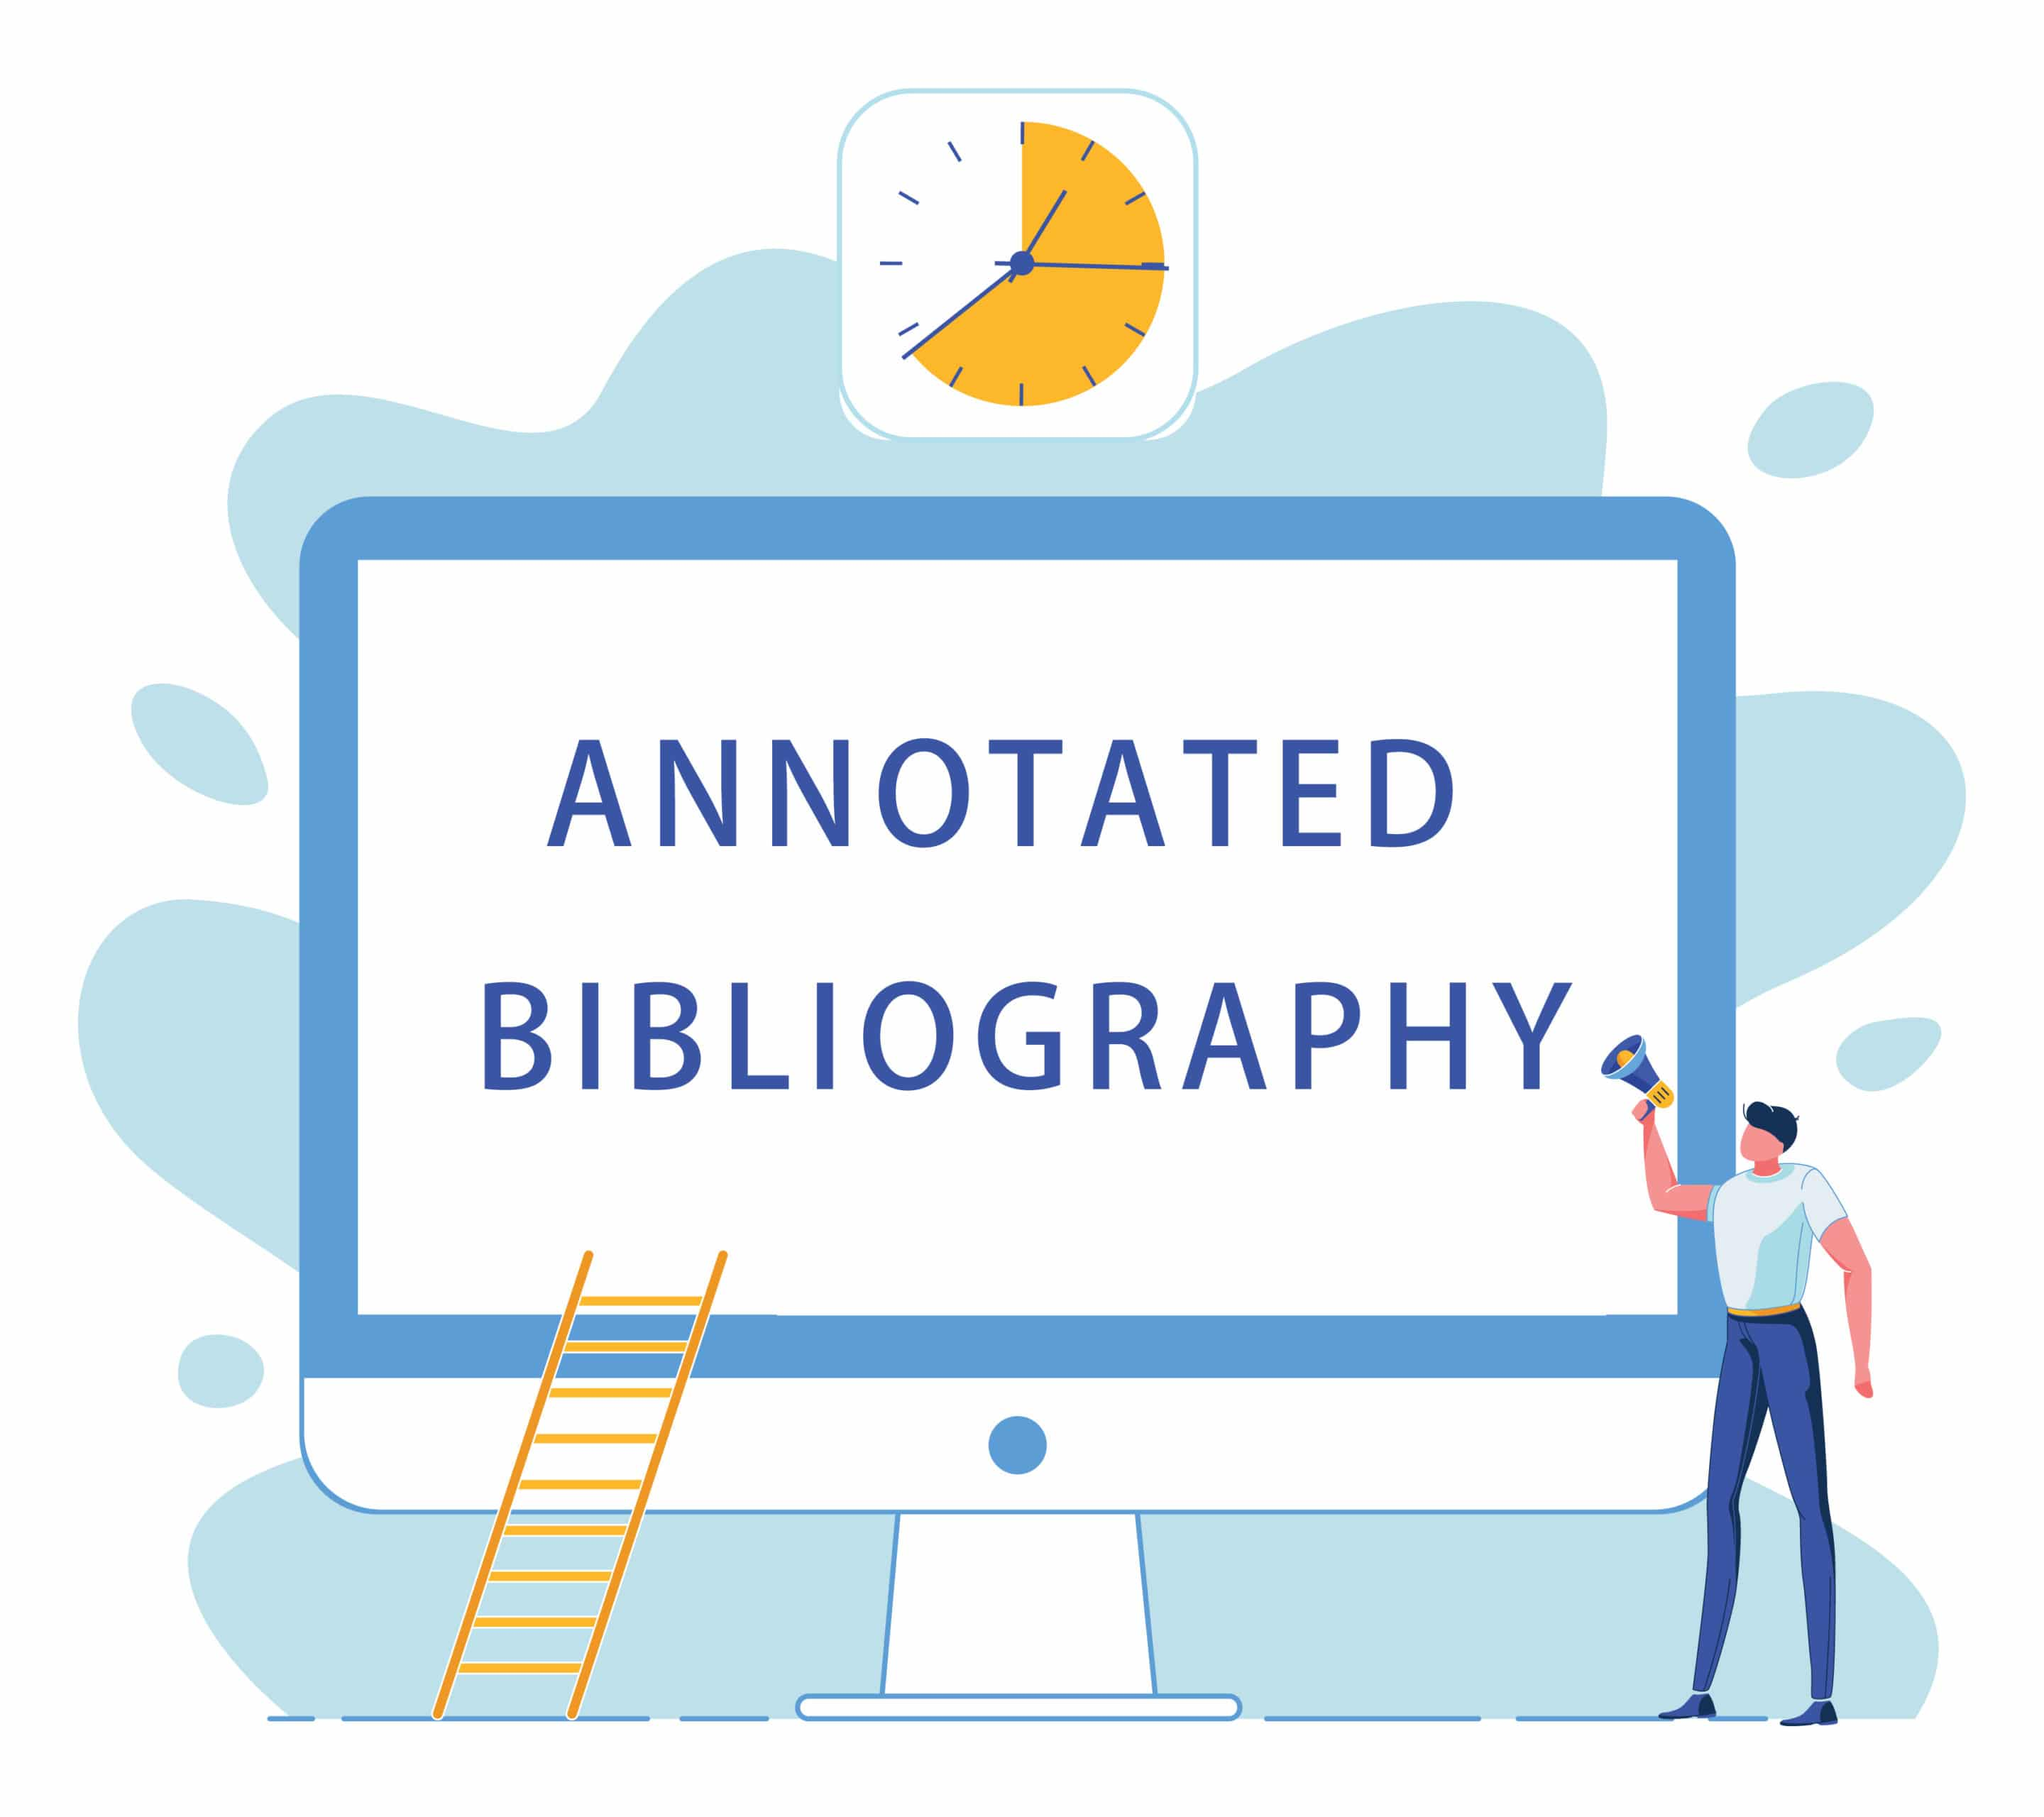 How to write a good annotated bibliography? - EssayMin